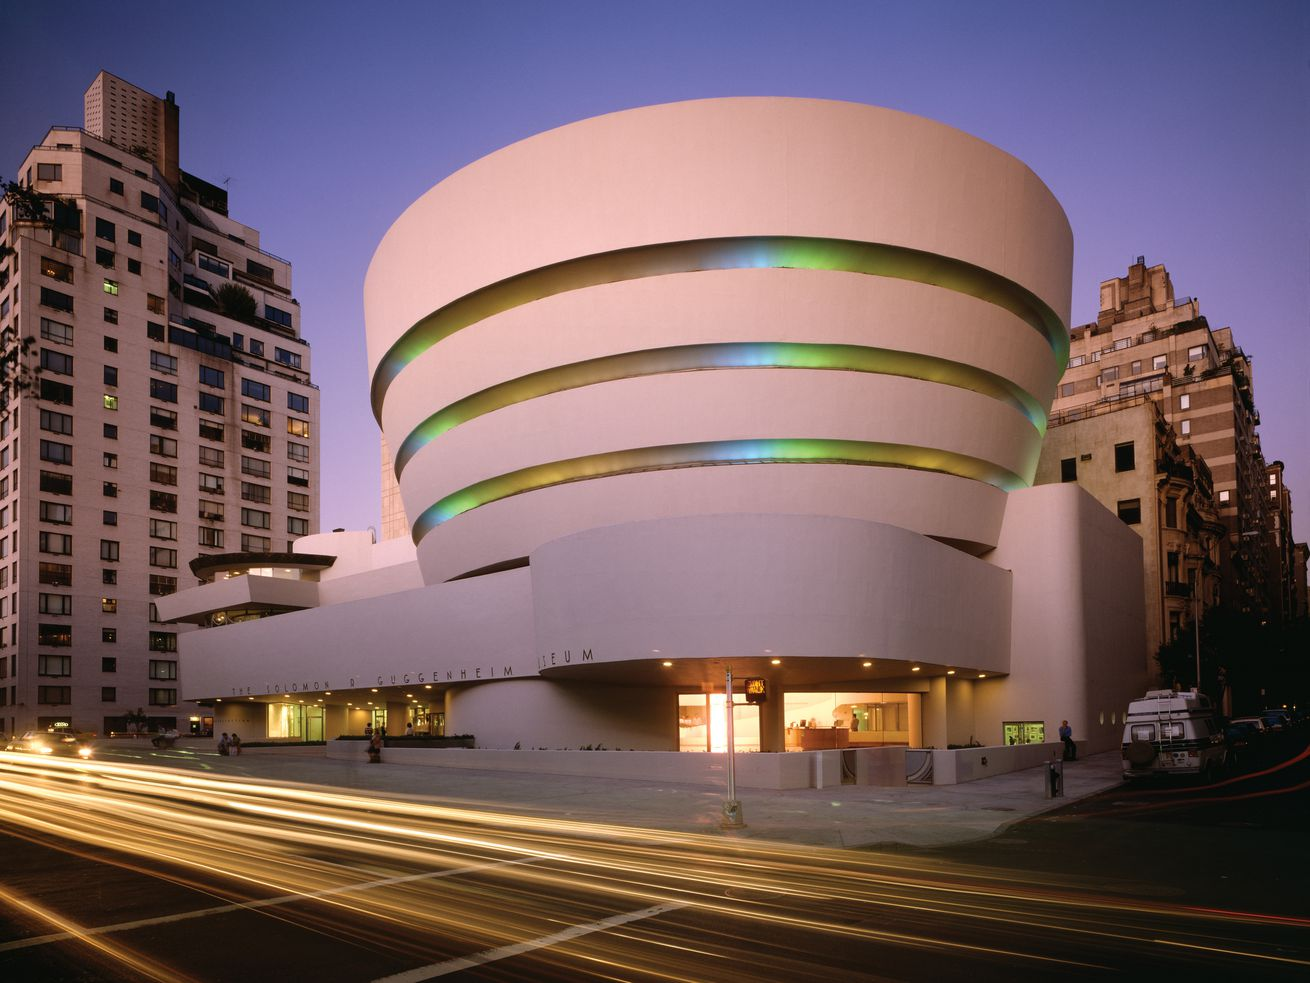 Guggenheim Museum in New York City. The apex of Wright's cylindrical and circular style, this cultural center was considered so striking when it opened, some feared it would overshadow the art within.